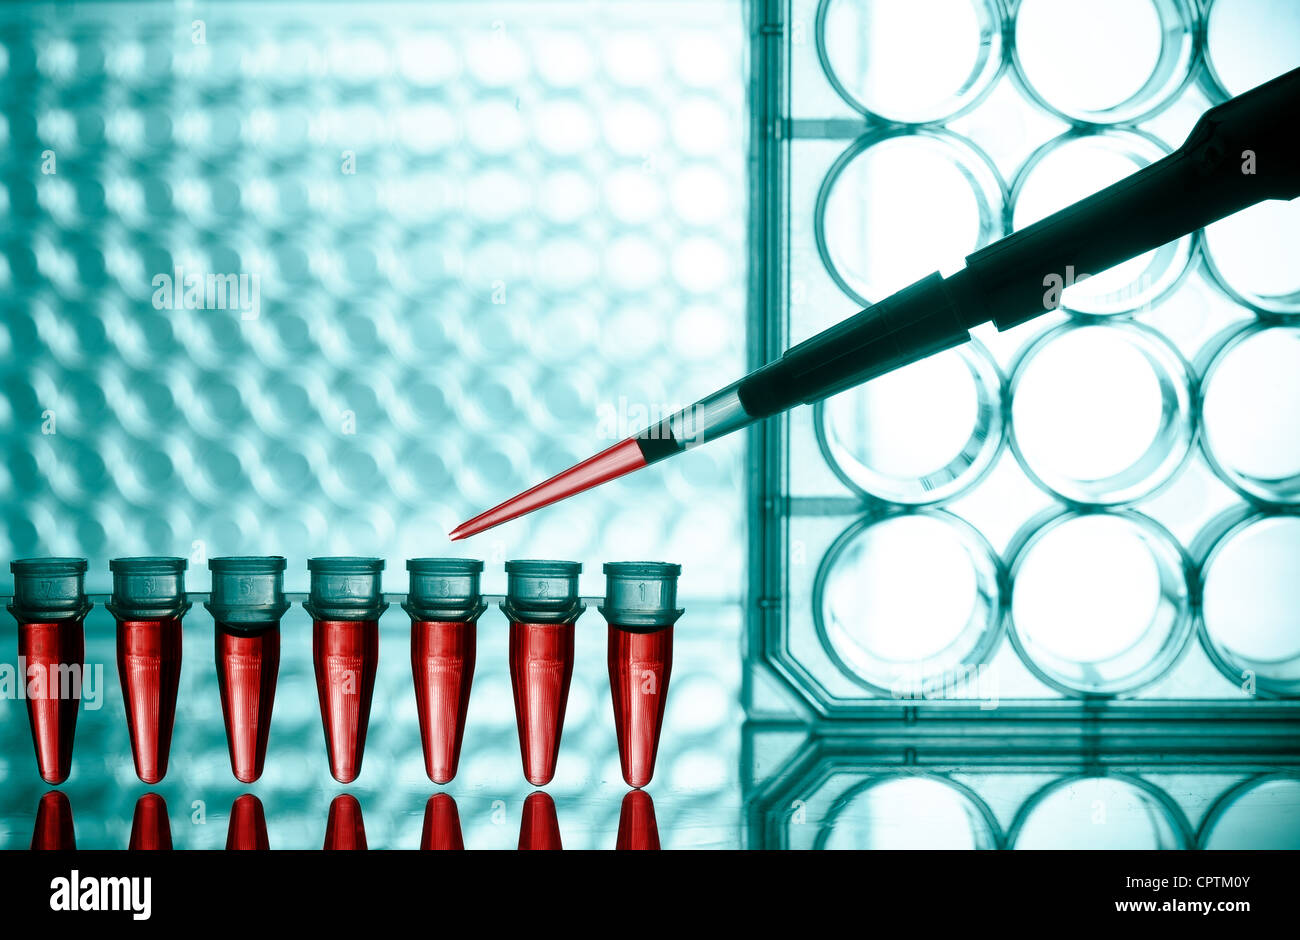 Microtubes and micropipet lab test - Stock Image